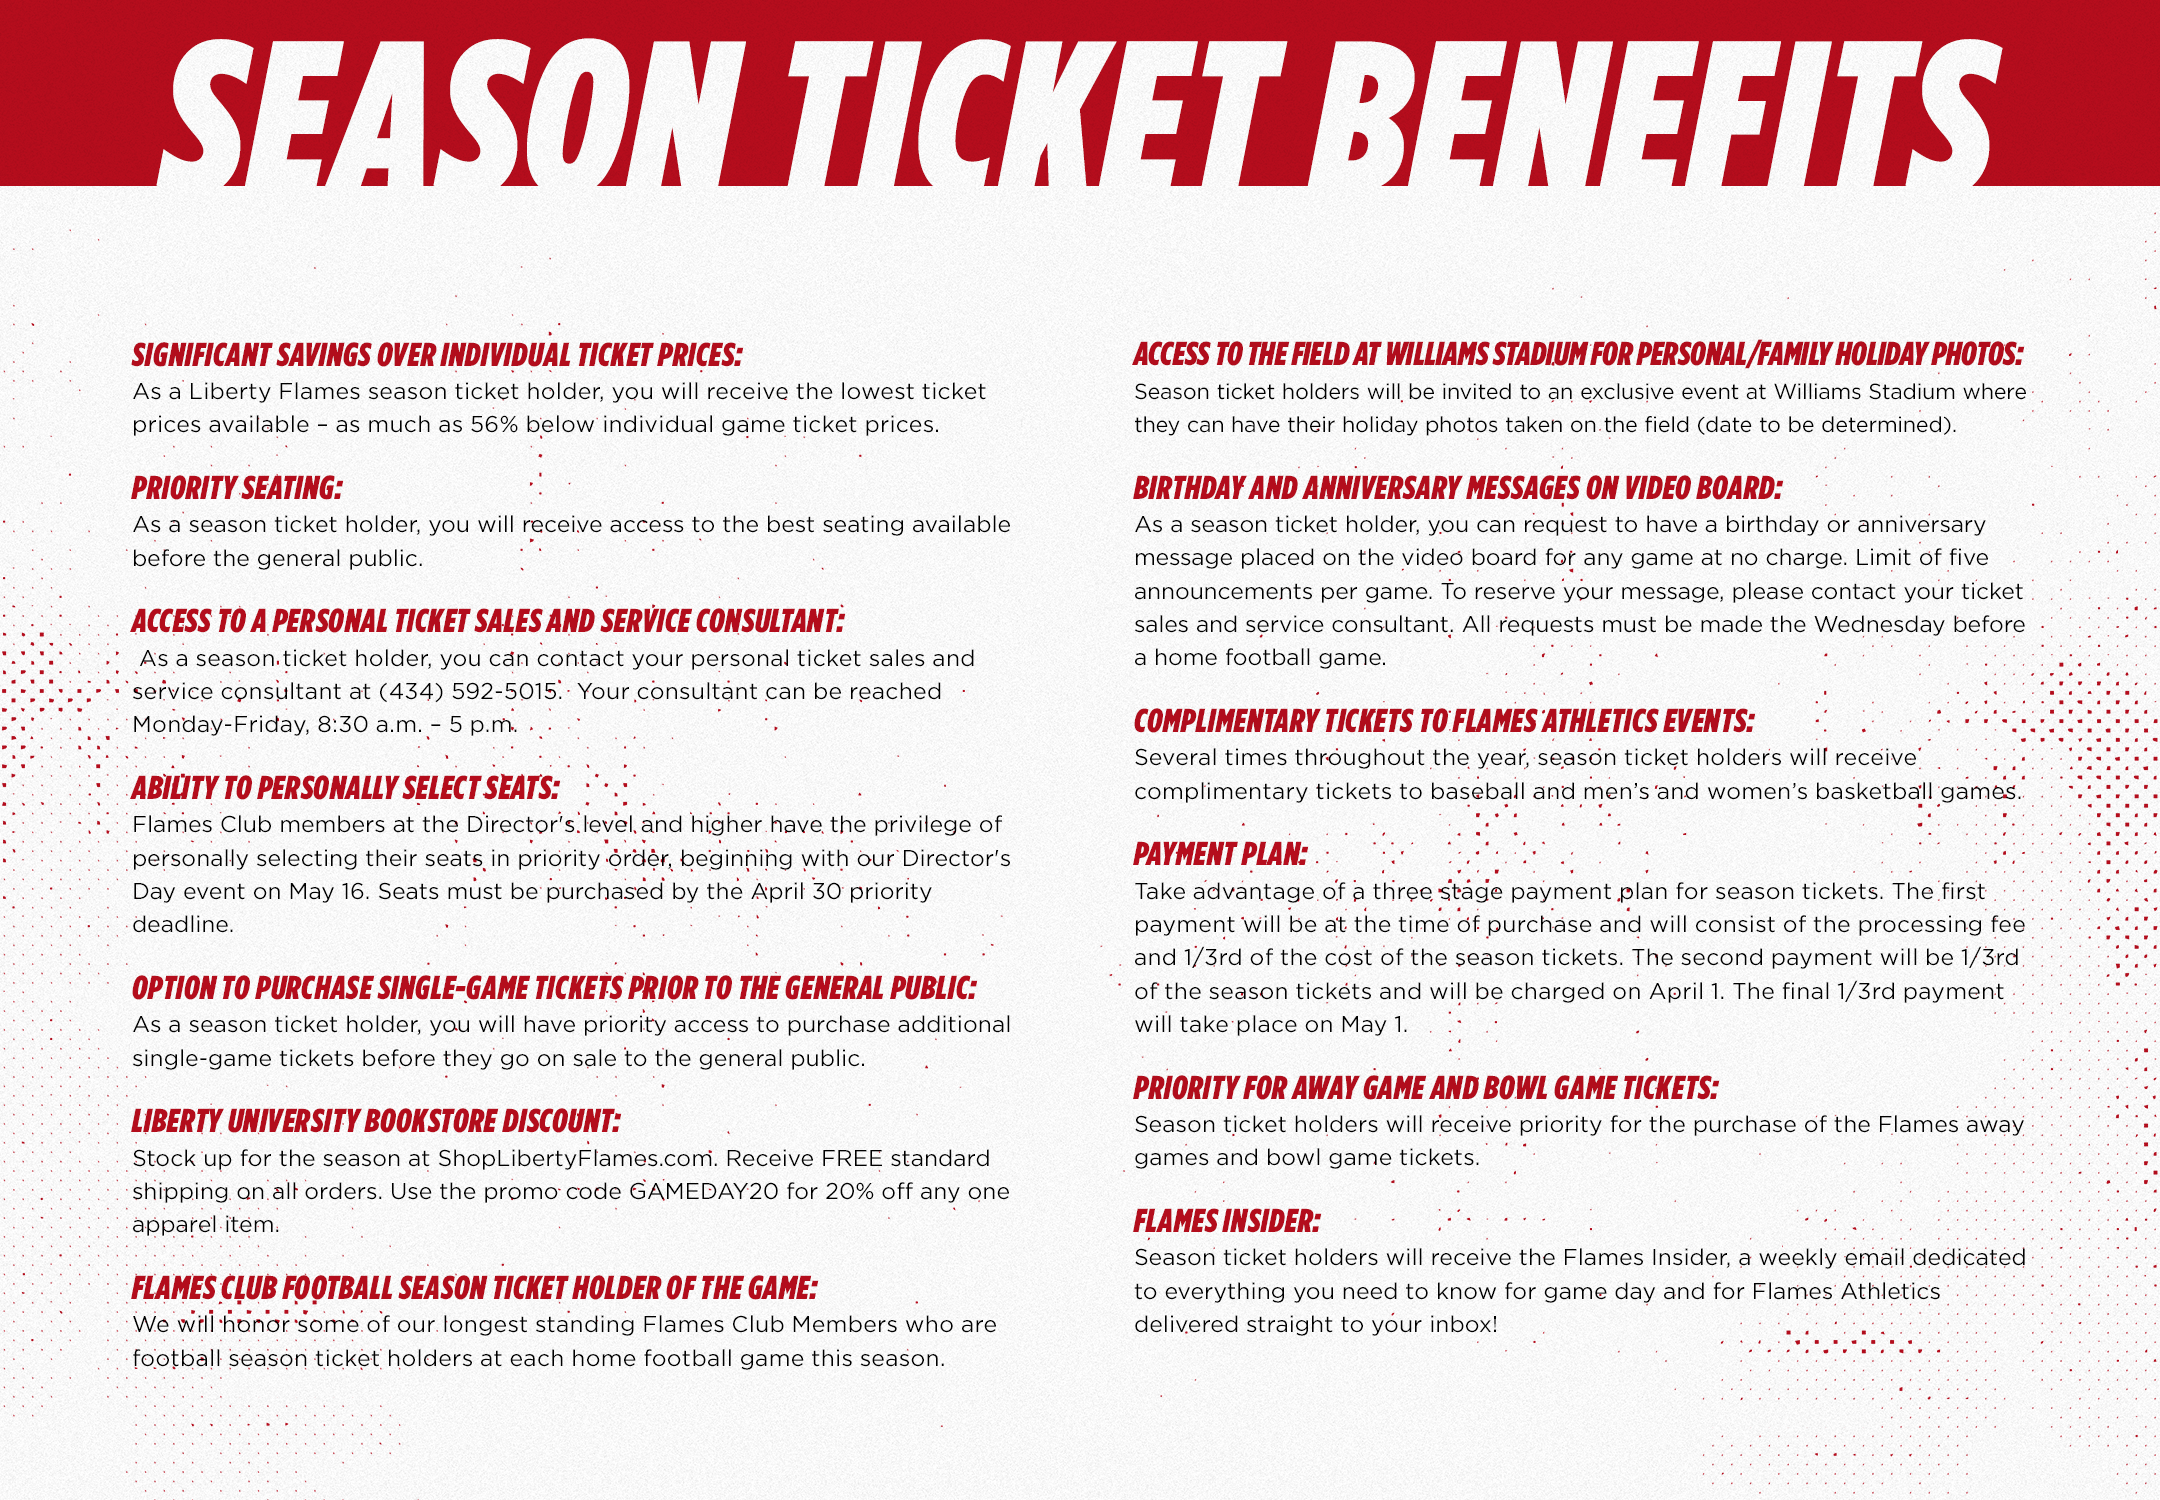 Significant savings over individual ticket prices: As a Liberty Flames season ticket holder, you will receive the lowest ticket prices available. Priority Seating:As a season ticket holder, you receive the first access to the best seating available. Priority for Away Game and Bowl Tickets Option to purchase single-game tickets prior to the general public Liberty University Bookstore Discount Access to a personal ticket sales and service consultant Flames Club Football Season Ticket Holder of the Game Complimentary Tickets to selected Flames Athletic Events